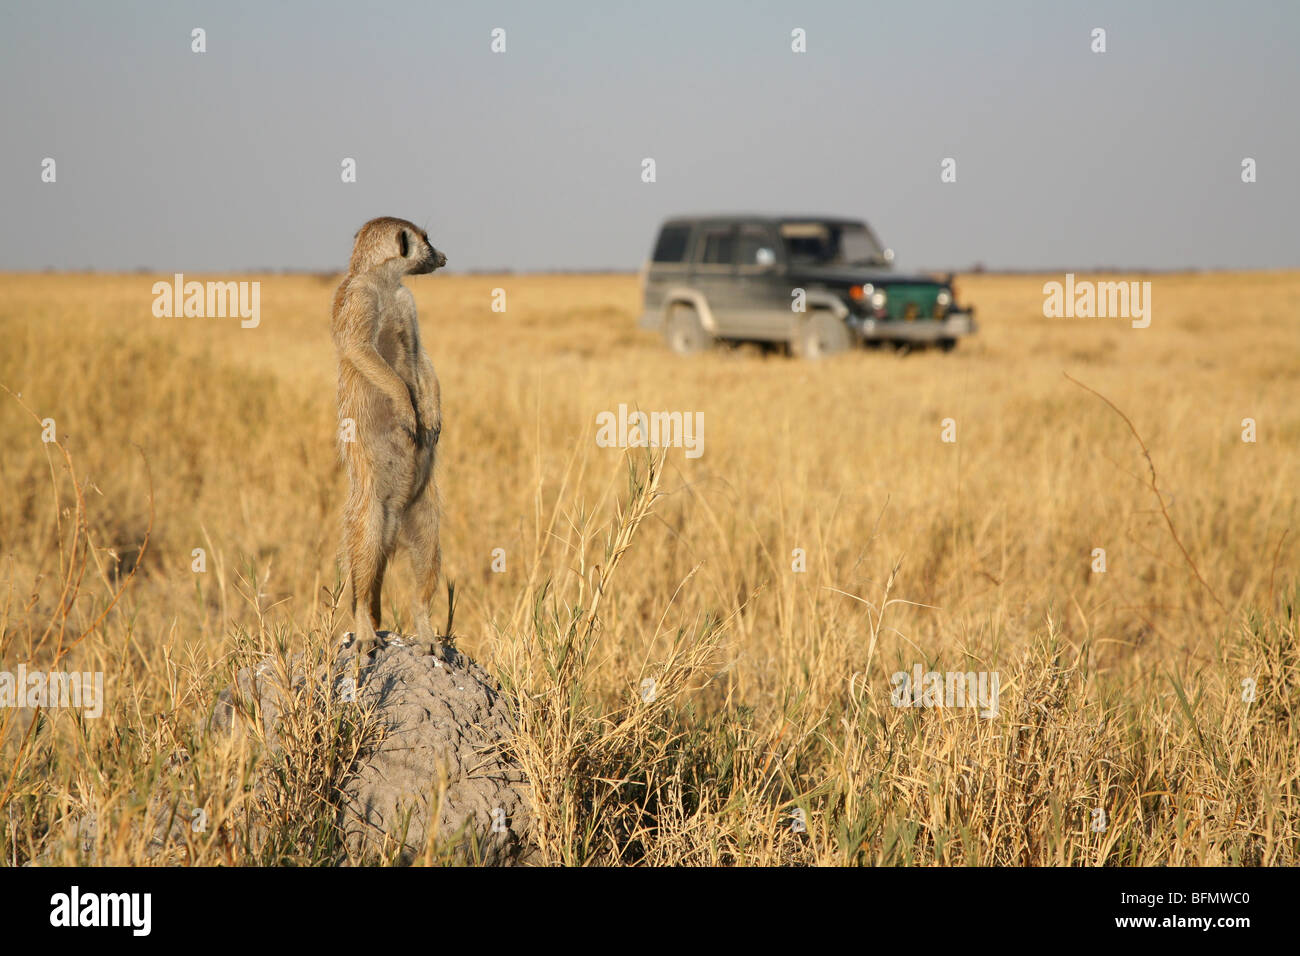 Botswana, Makgadikgadi. A meerkat watches a 4x4 drive through the grasslands of the Makgadikgadi. - Stock Image